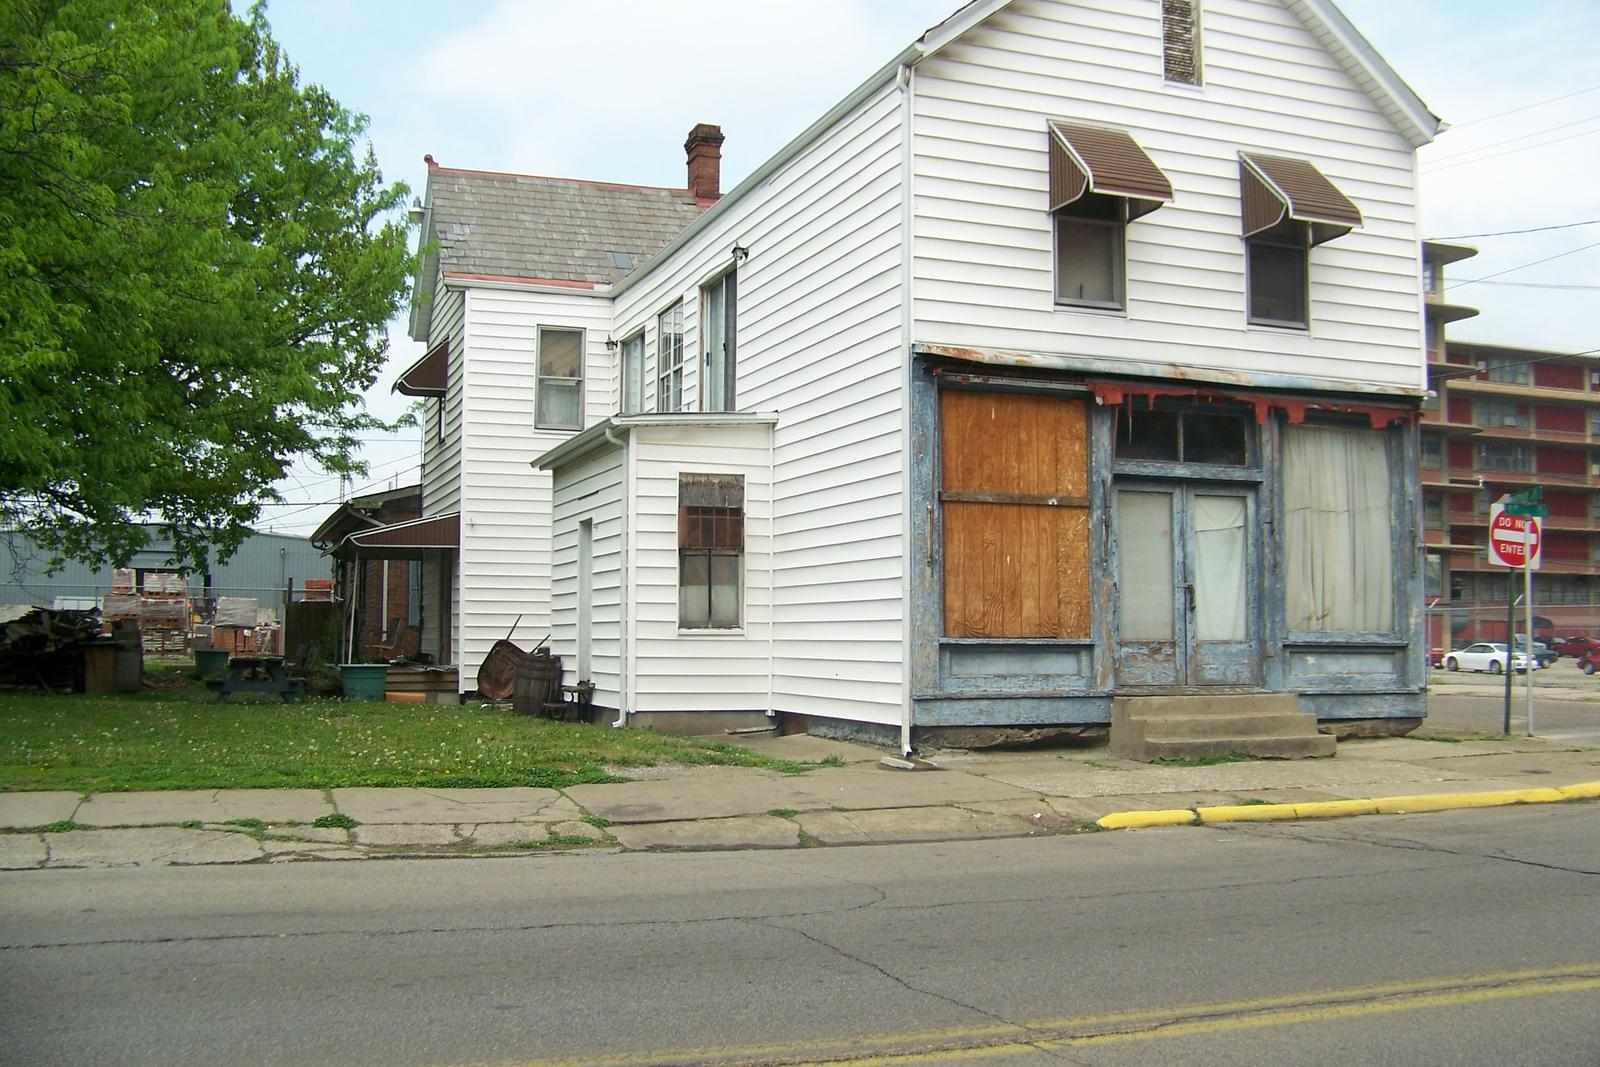 Picture 39 of 60 from Album Portsmouth, Ohio Spring 2009